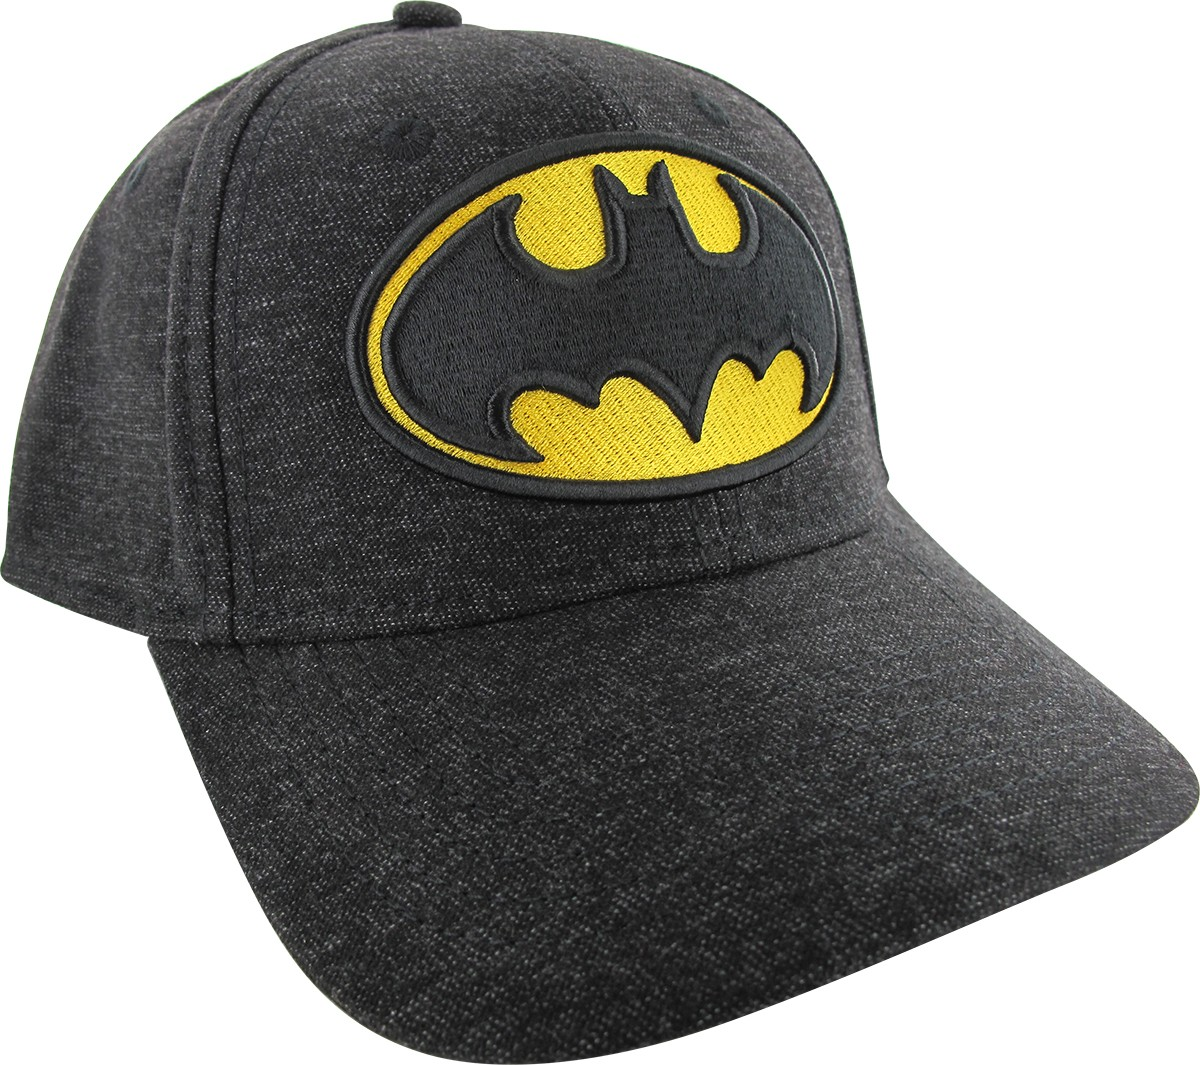 batman embroidered logo heathered black flex hat